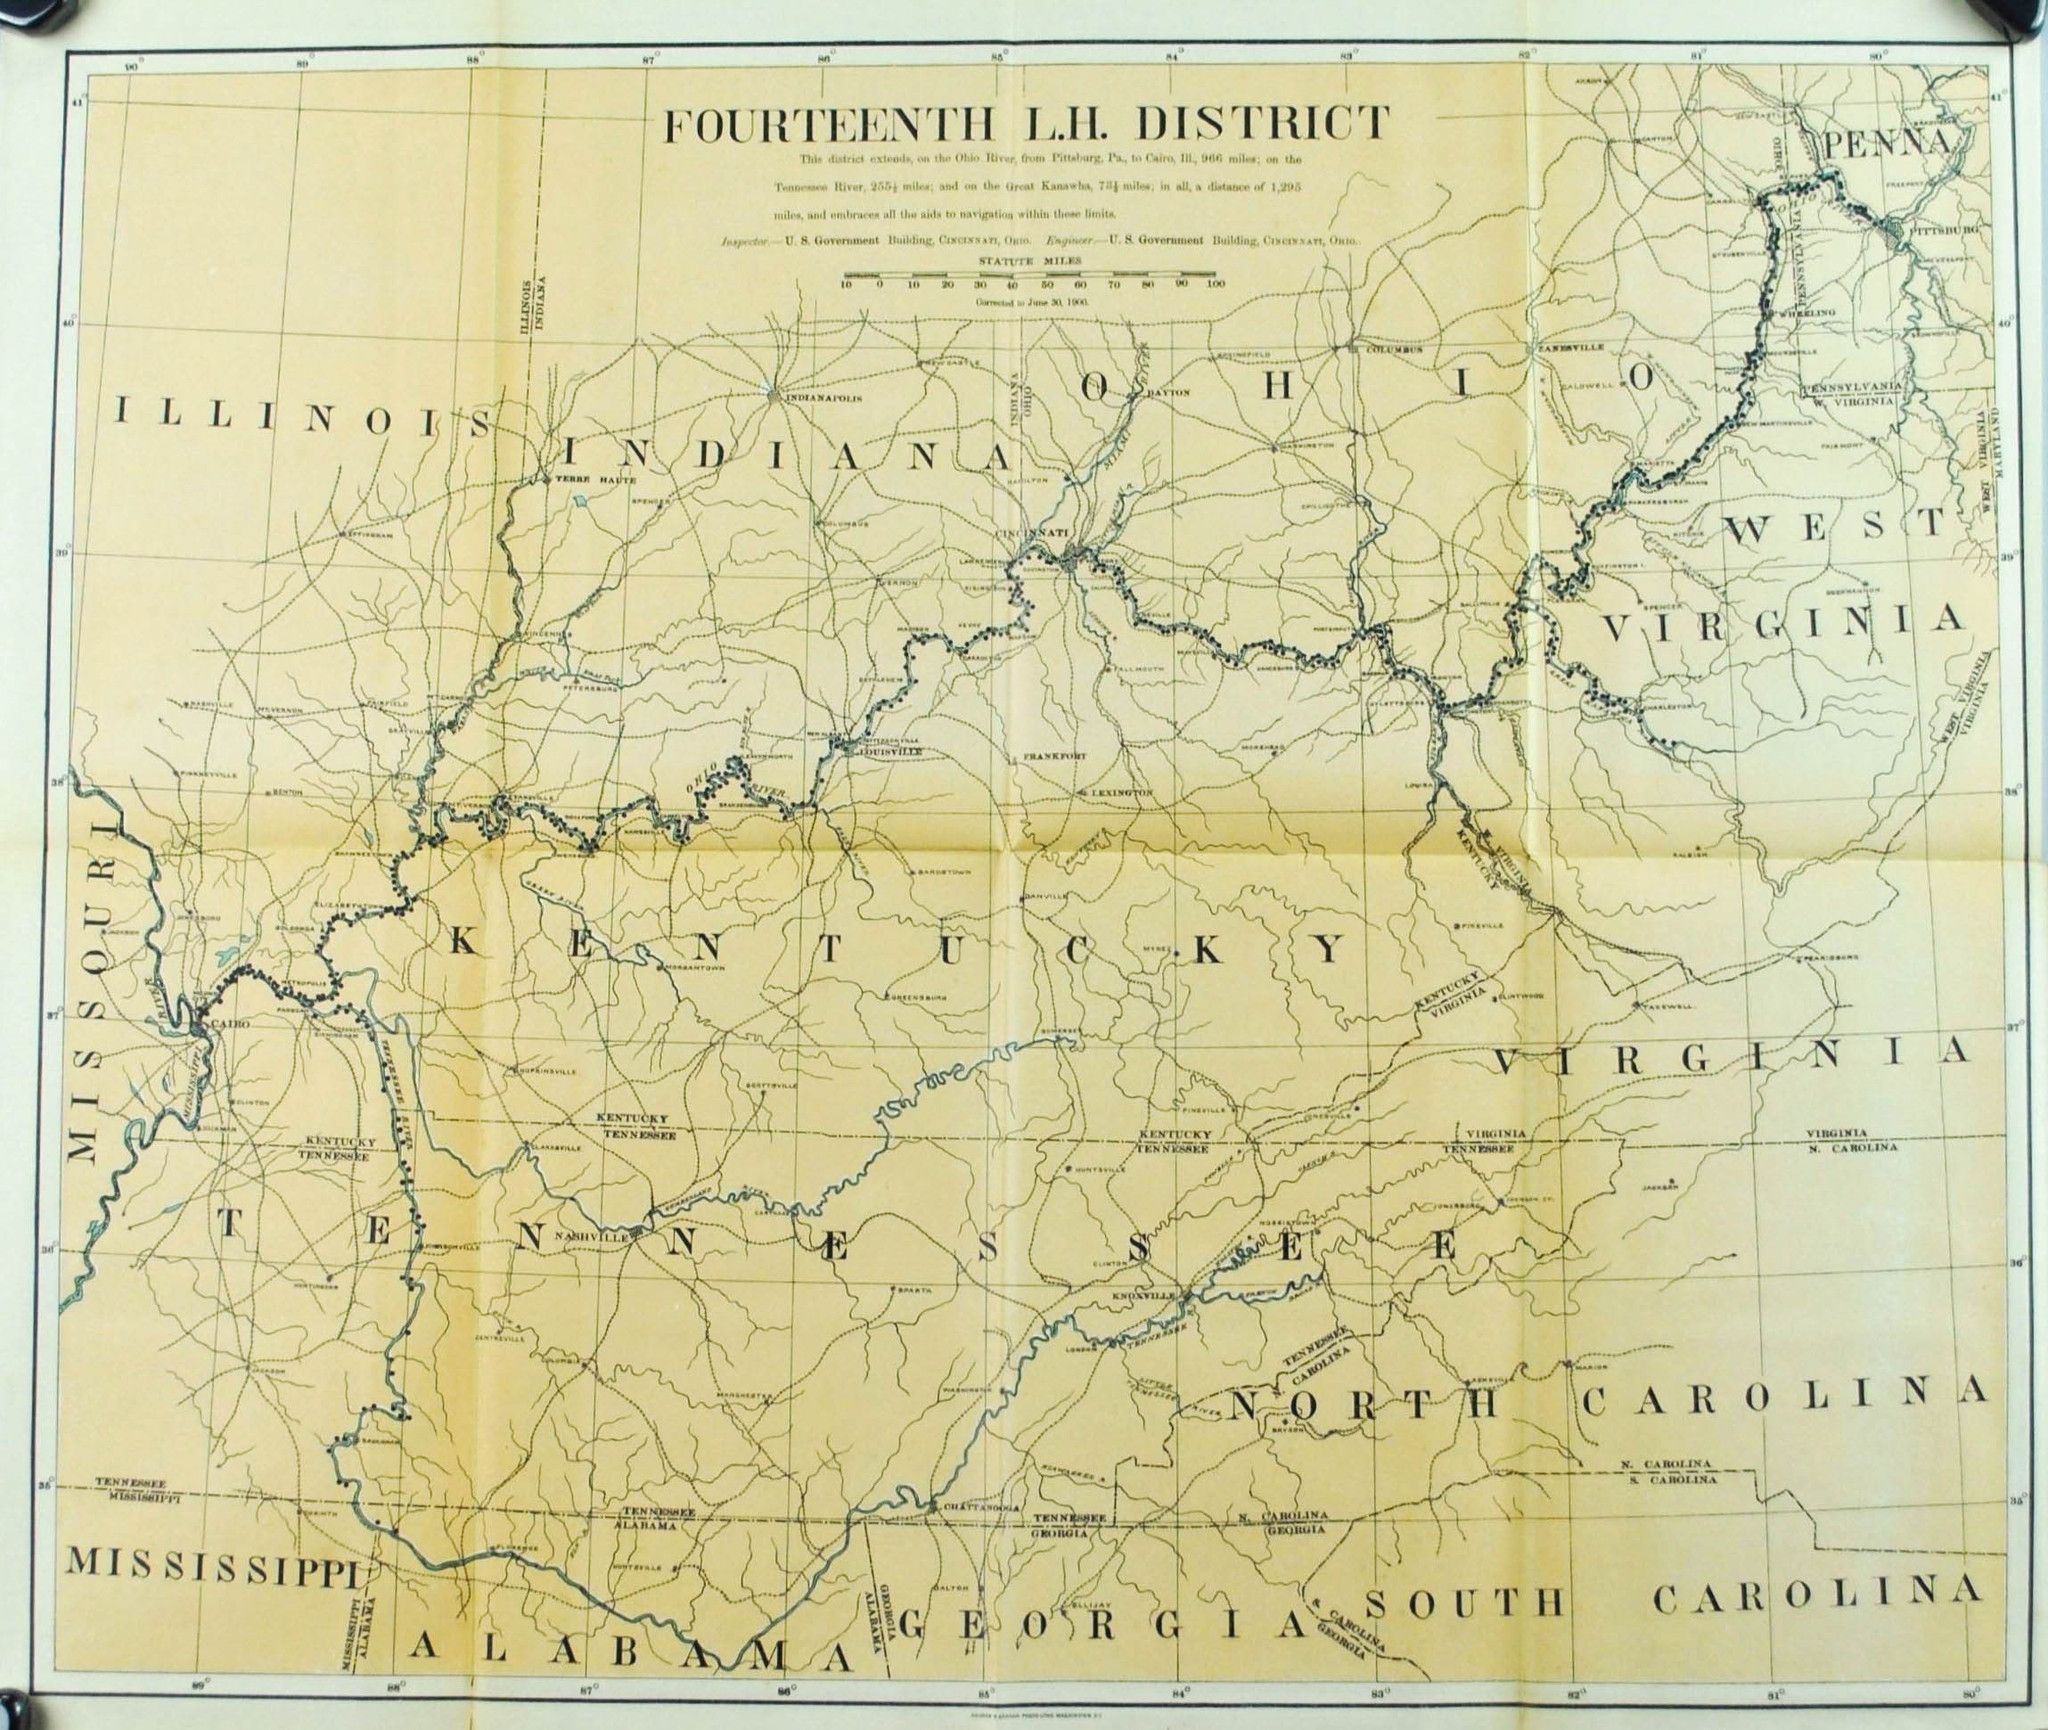 Lighthouse Ohio River Antique Map 1900 Lighthouse